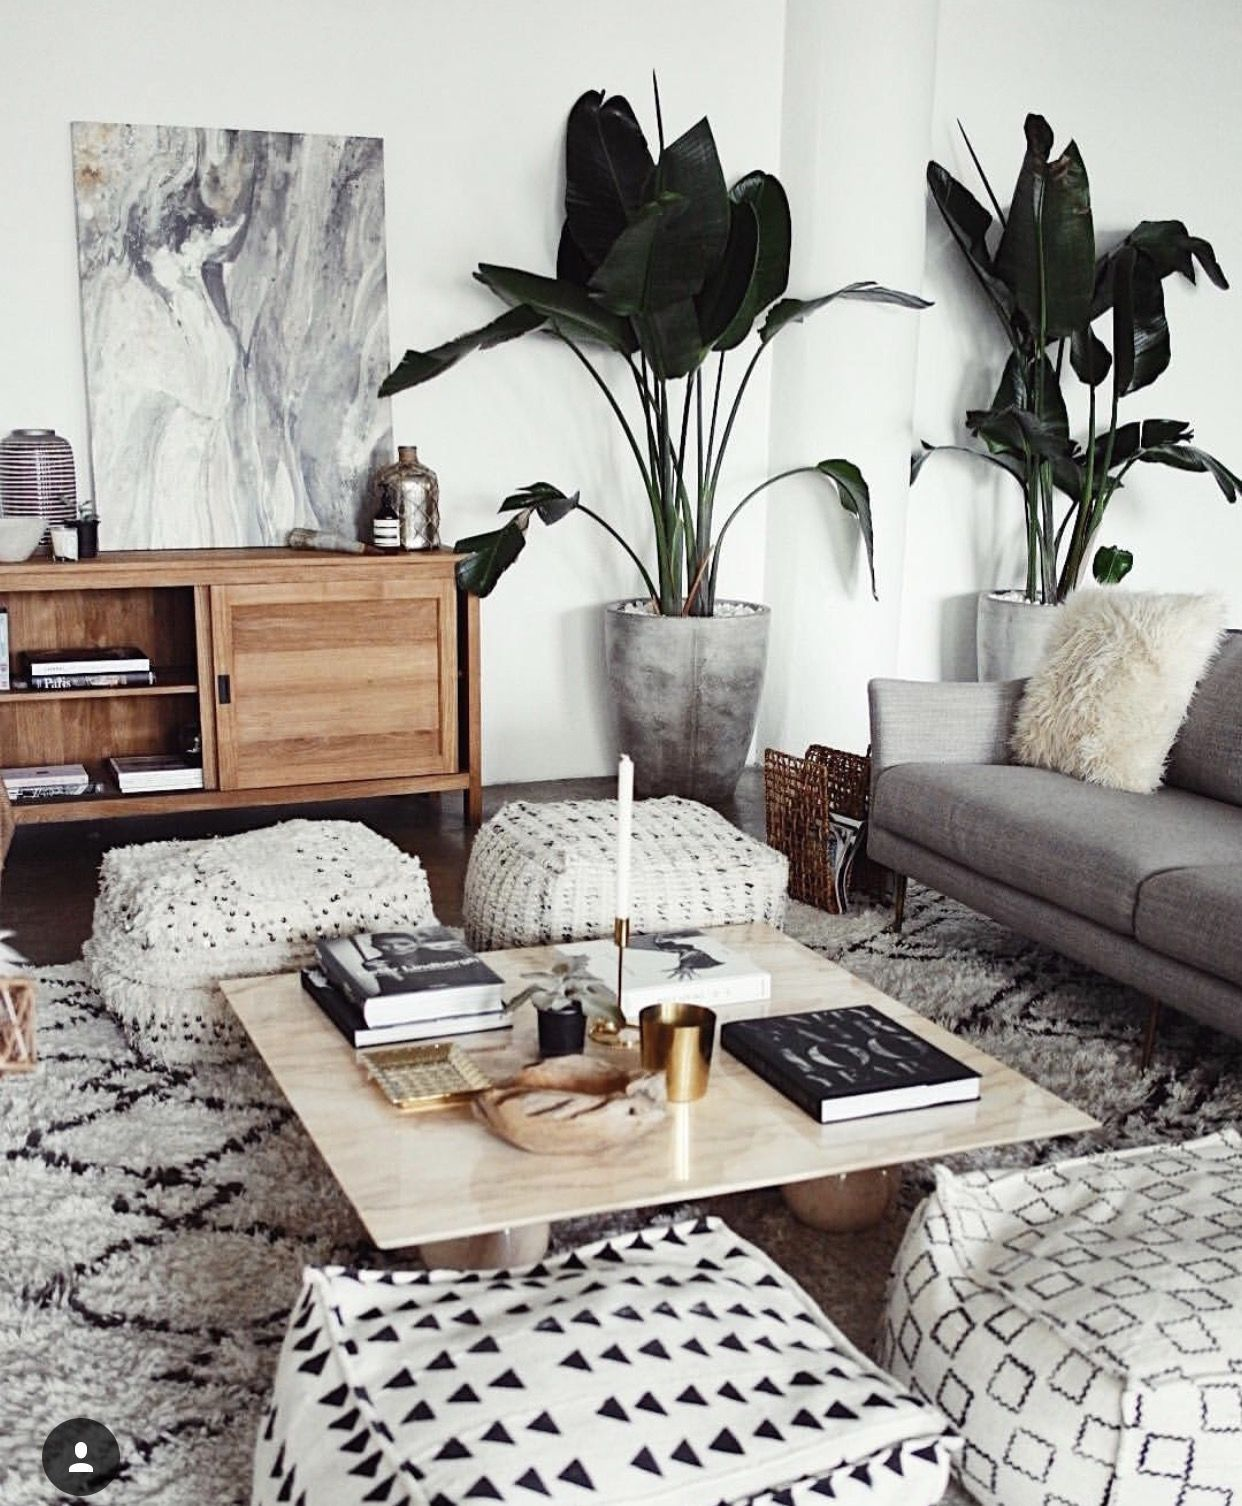 Black And White Small Living Room Interior Design Ideas Home Decor Ideas Diy Home Decor Apartment Decorating Small Living Room Decor Room Inspiration Interior